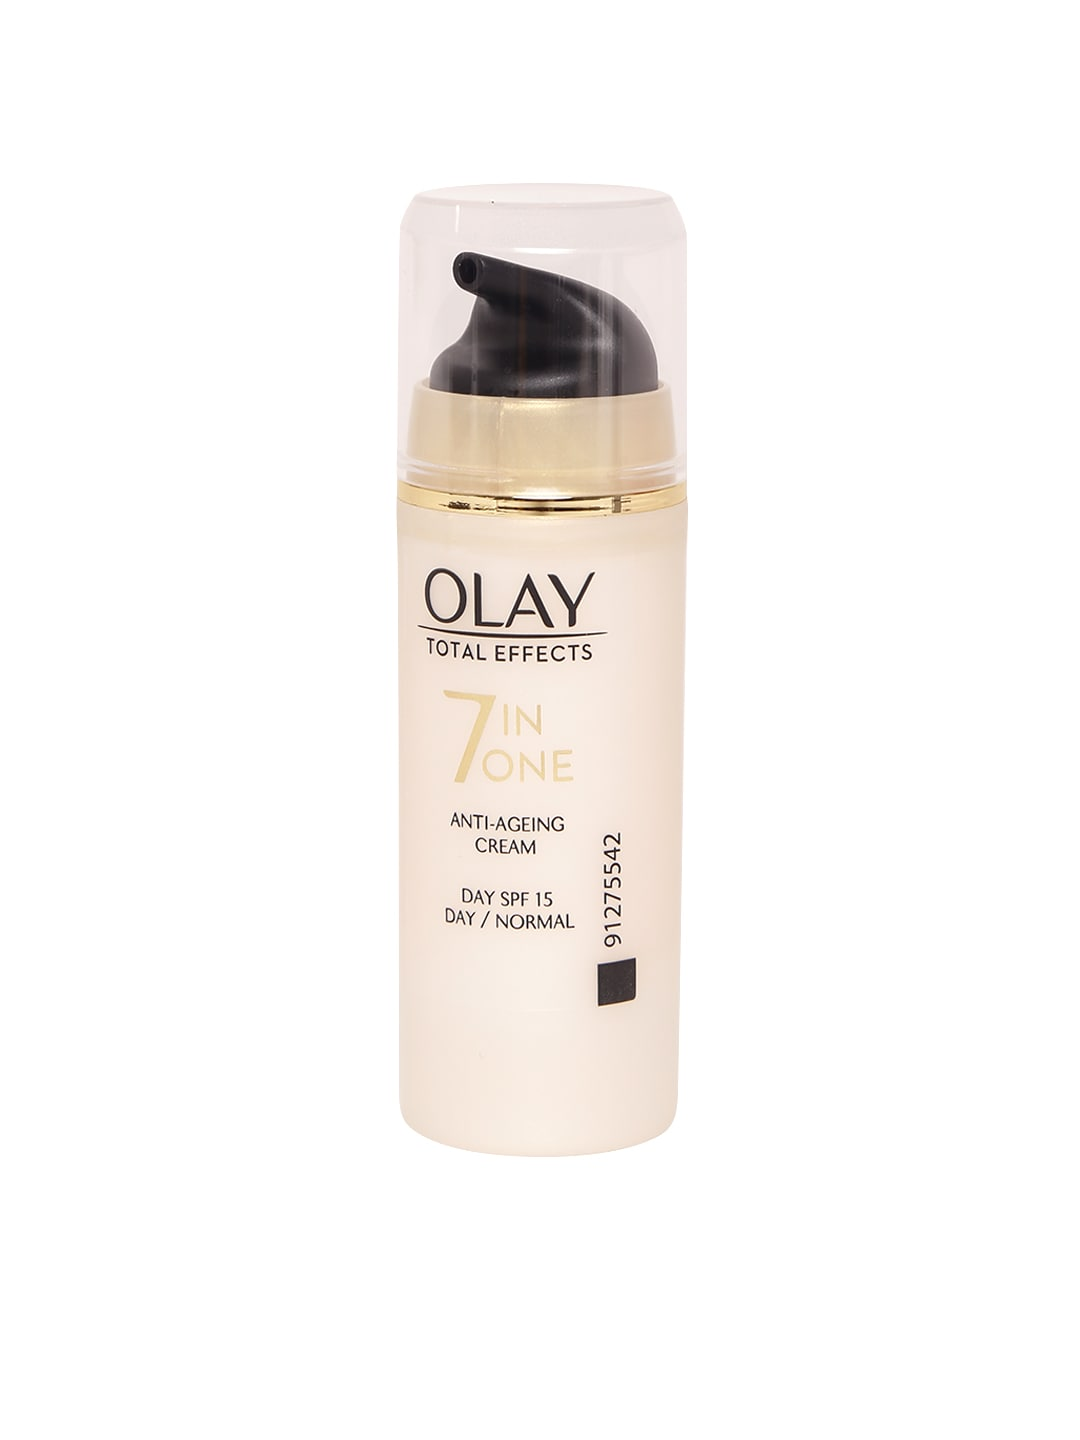 Olay Exclusive Products Online In India Myntra Total Effects 7in1 Anti Ageing Serum 50ml